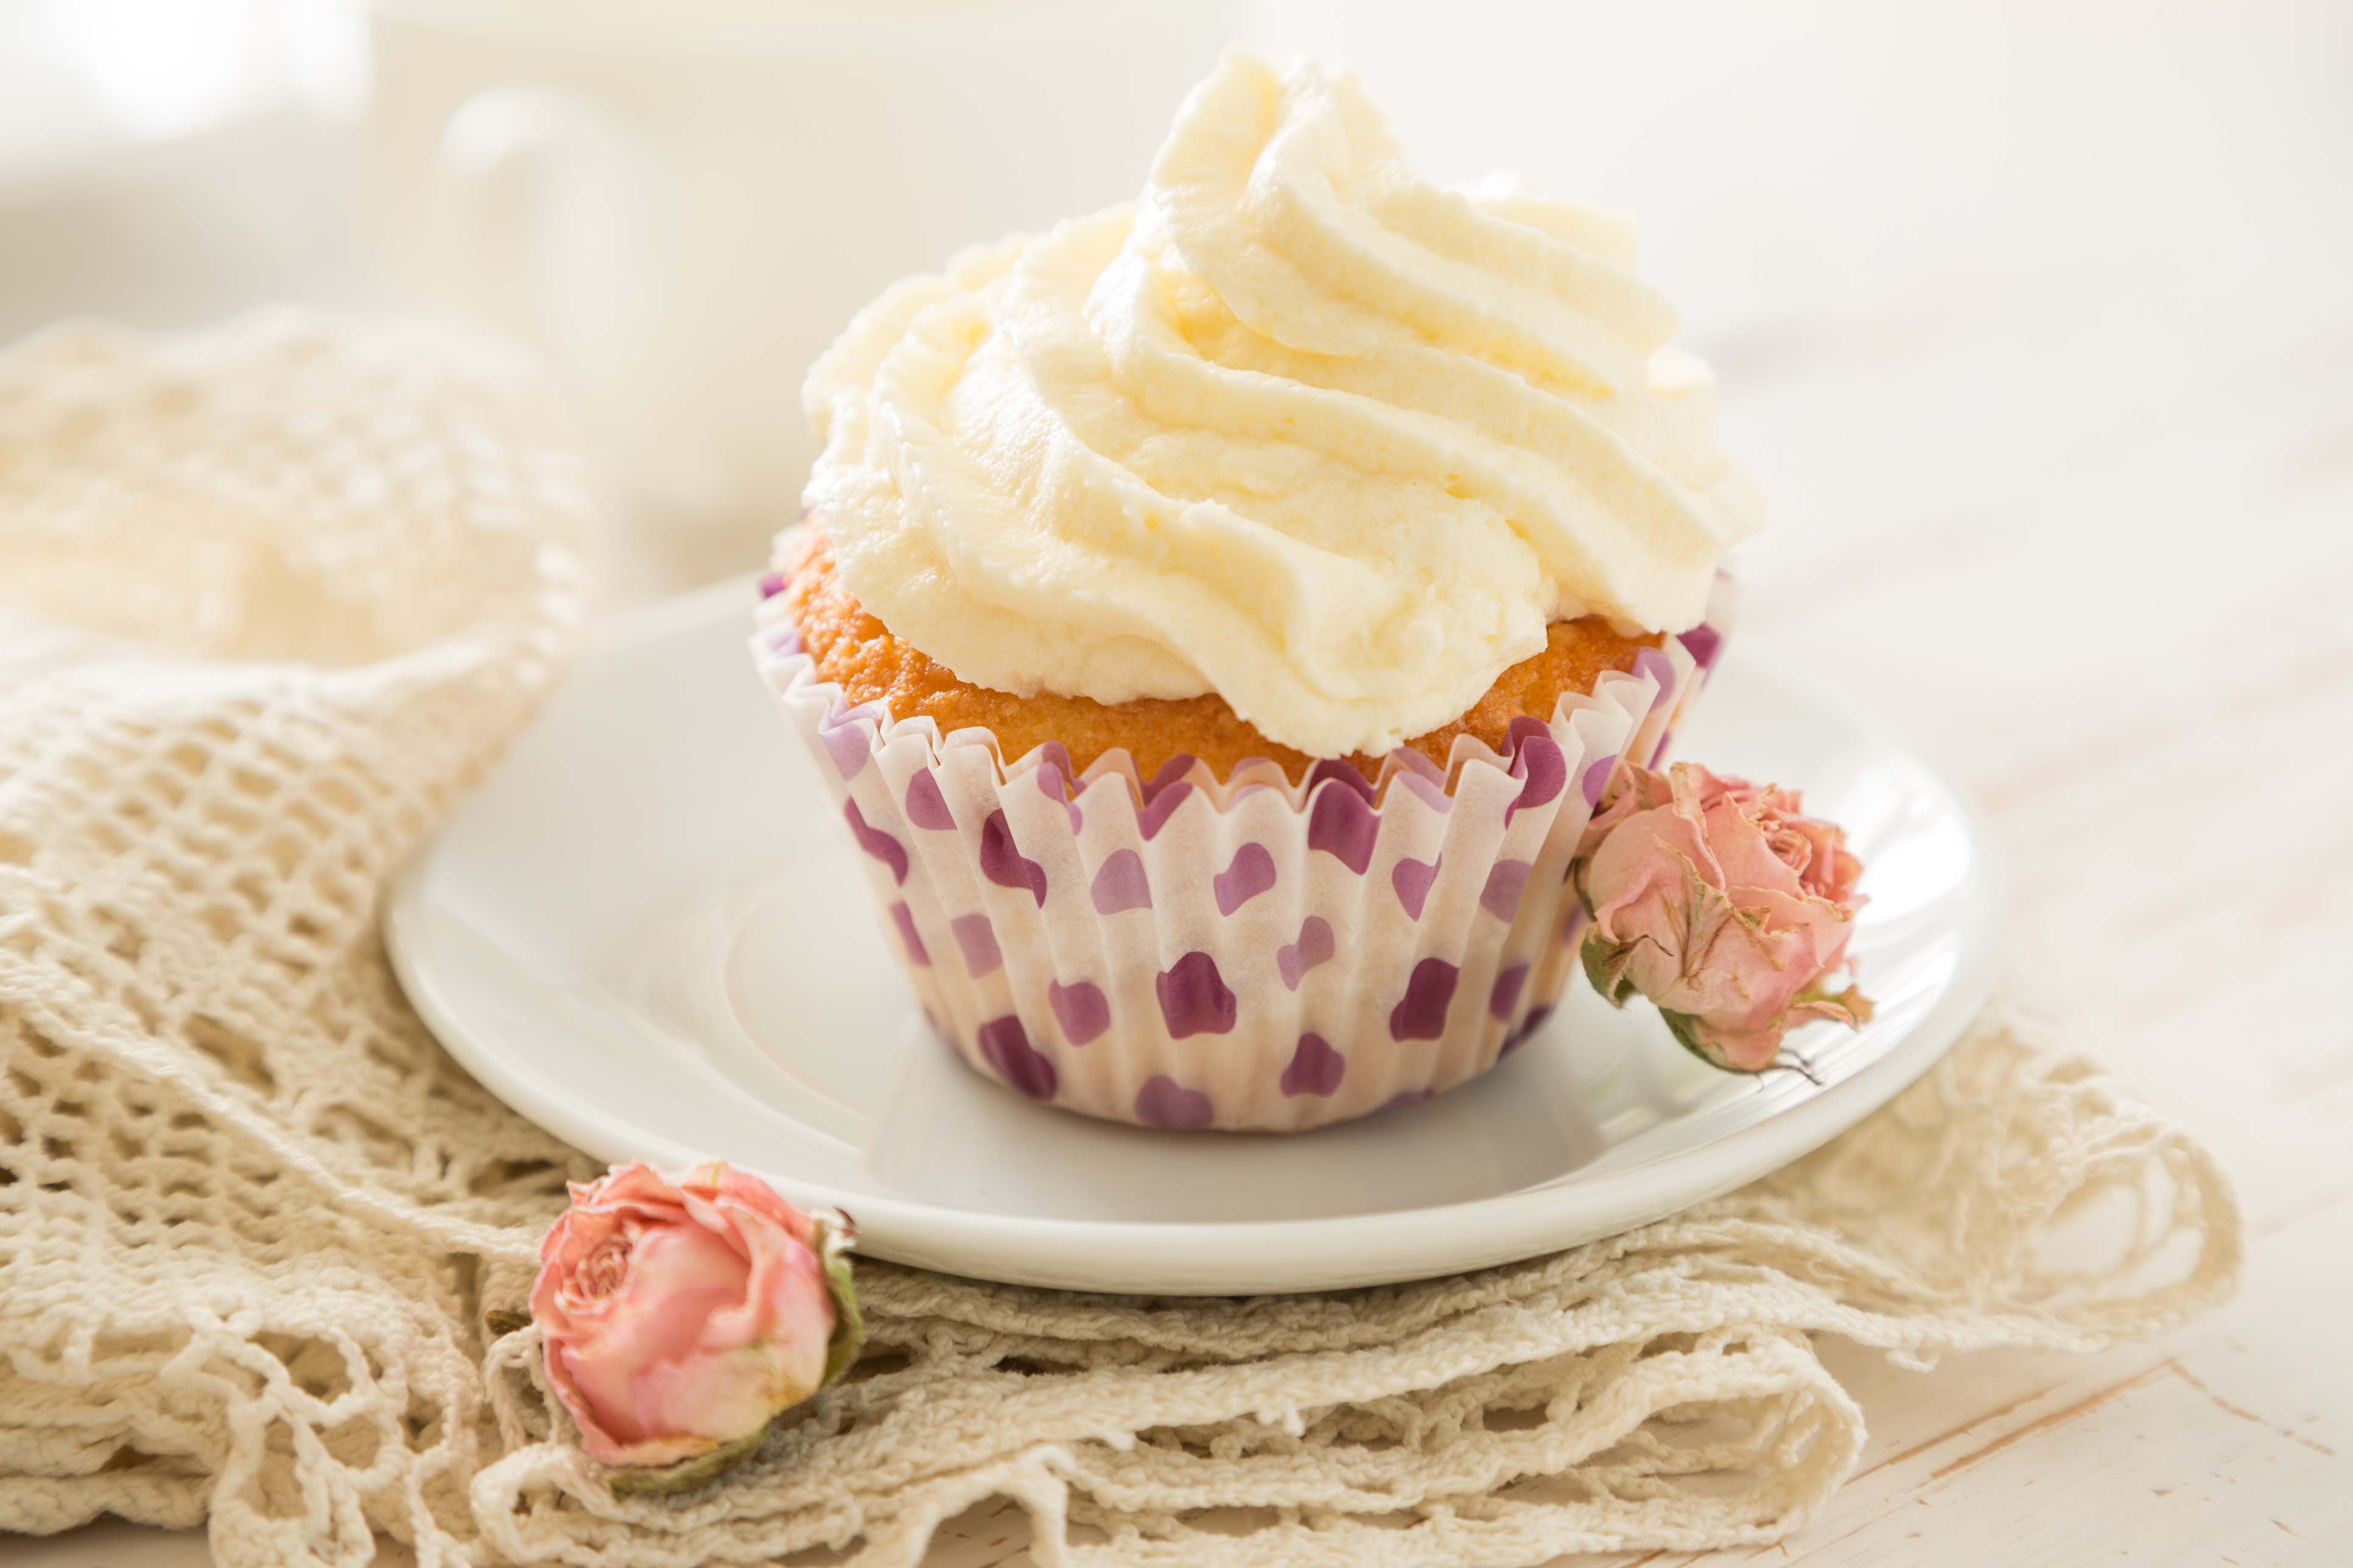 Vanilla cupcake on wood background, copy space